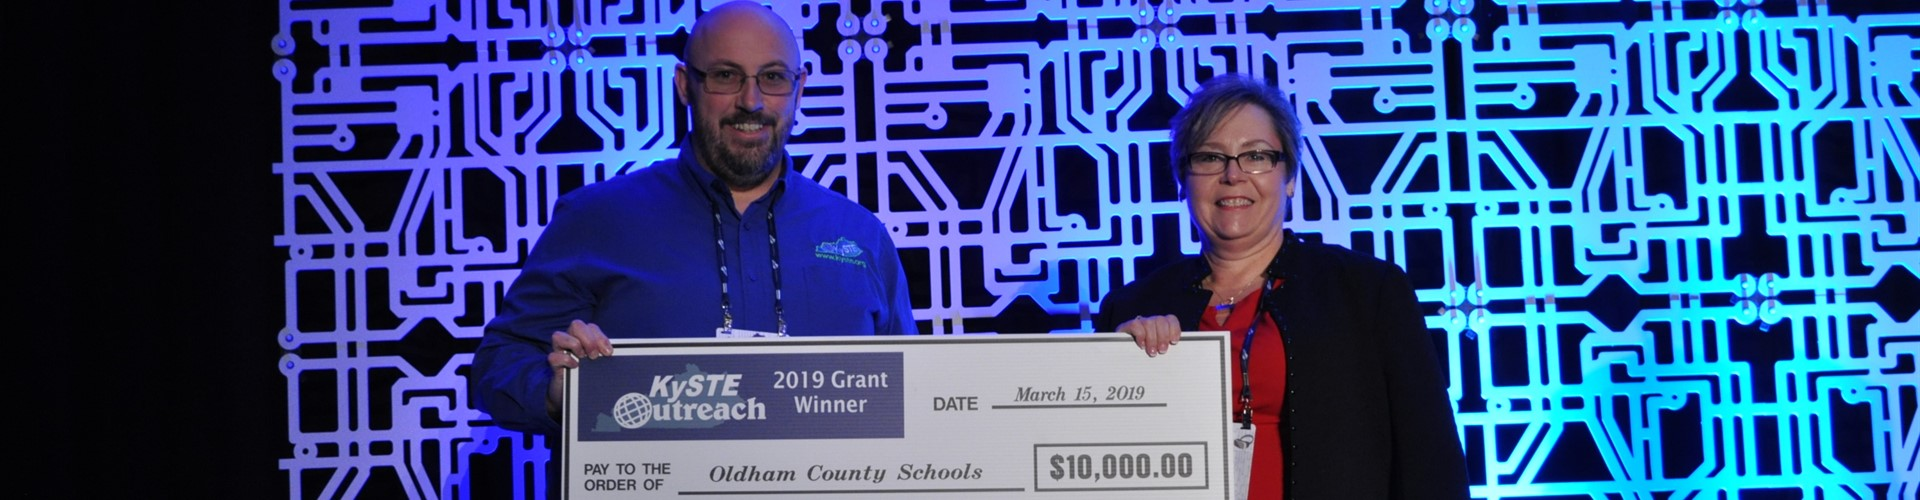 Outreach Grant Winner - Oldham County